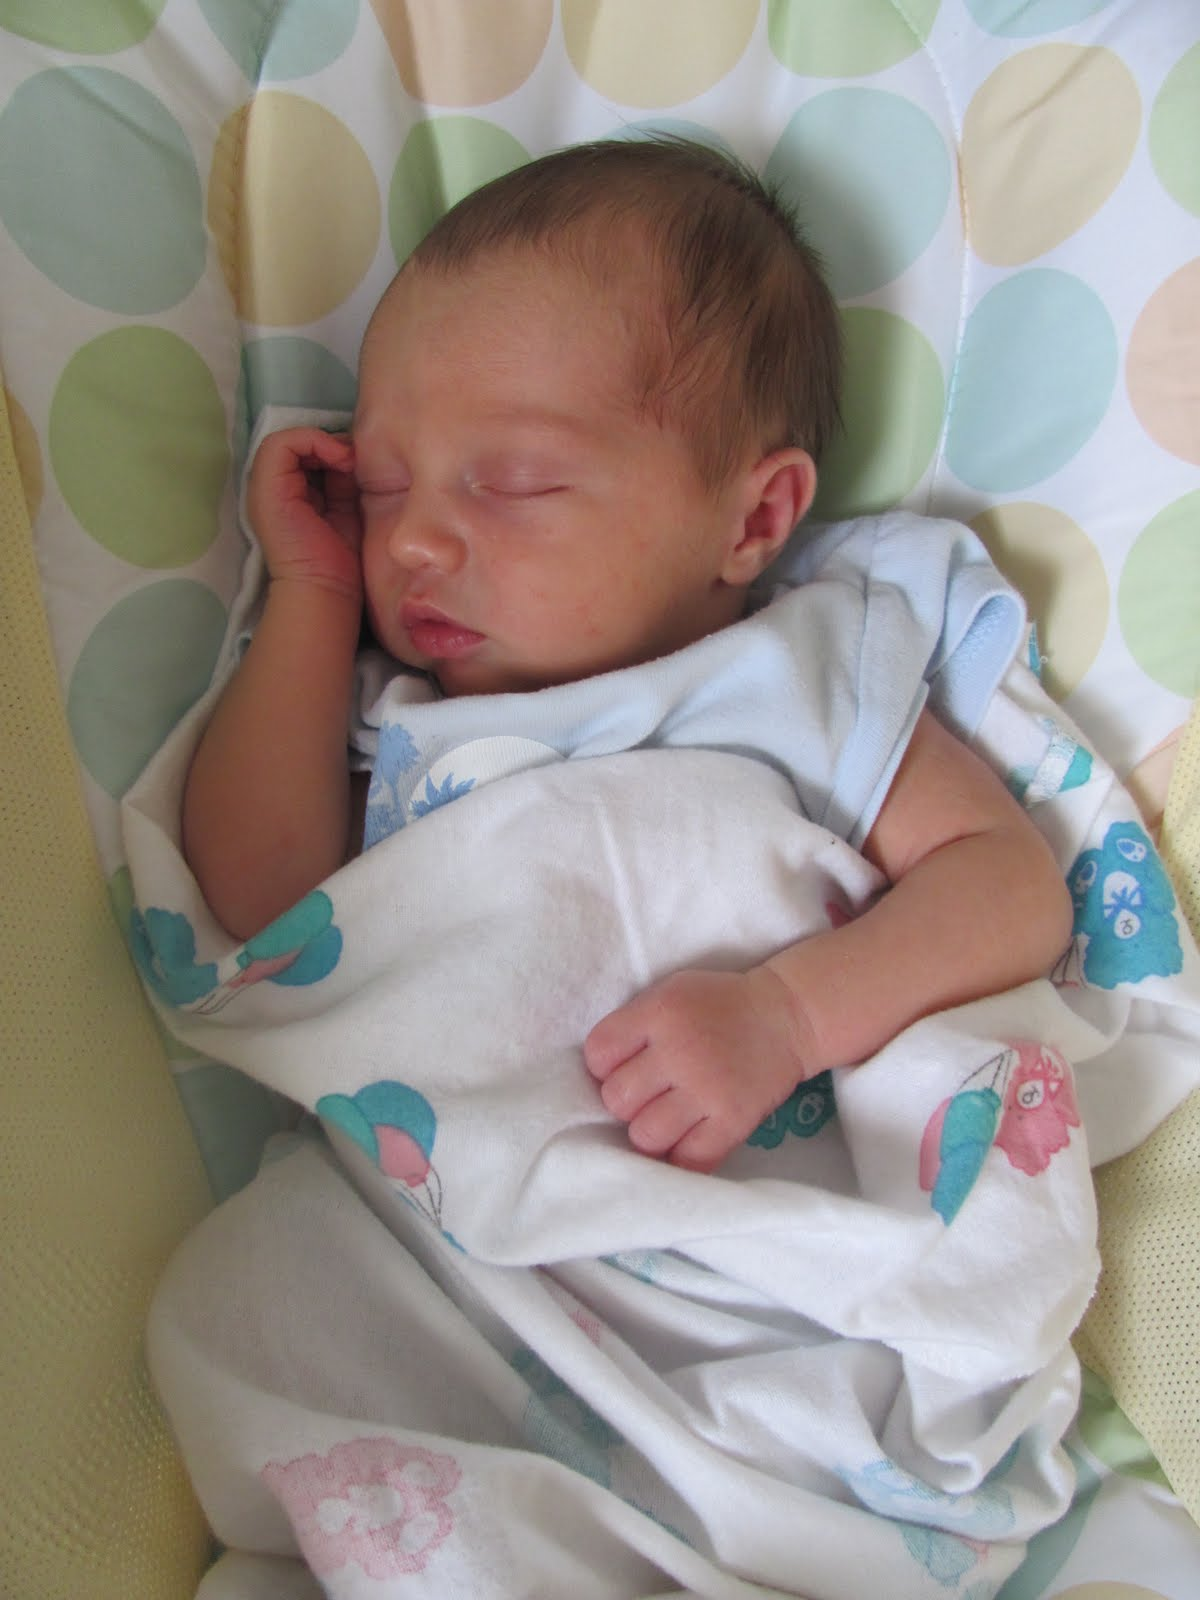 1 2 Day Old Baby Boy Pictures to Pin on Pinterest - PinsDaddy